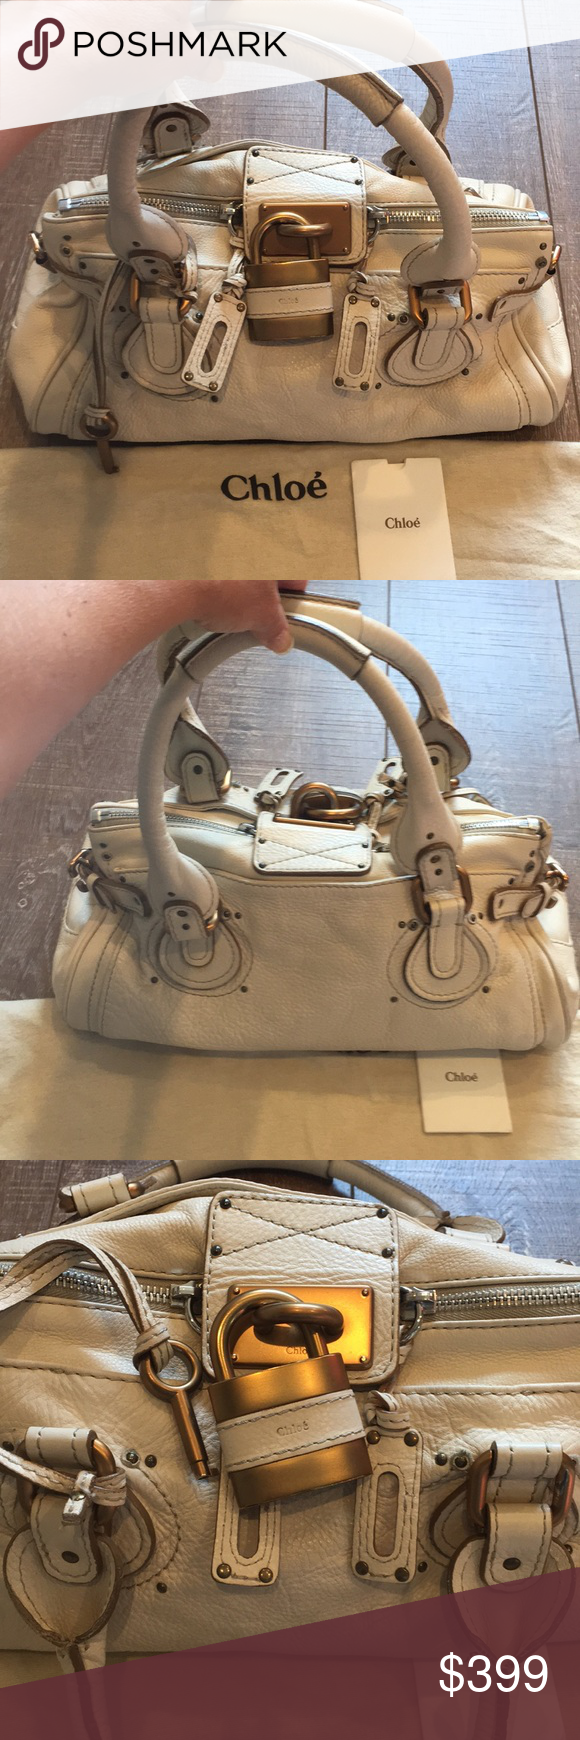 """Chloe Paddington bag in ivory Classic Chloe Paddington bag in ivory. 100% authentic. The Paddington is a slouchy bag and naturally has somewhat of a worn look to it. Gently loved and has some minor signs of wear - some scratches on hardware and minor wear on the leather, small stain(I didn't notice, until I zoomed in for the picture)beneath handle(see photo) but in overall very good condition. There are 2 zippers that meet in the middle. Flap with lock secures purse. Comes with dust bag and care card. 14.5""""x9"""" Strap drop 8"""" Chloe Bags"""